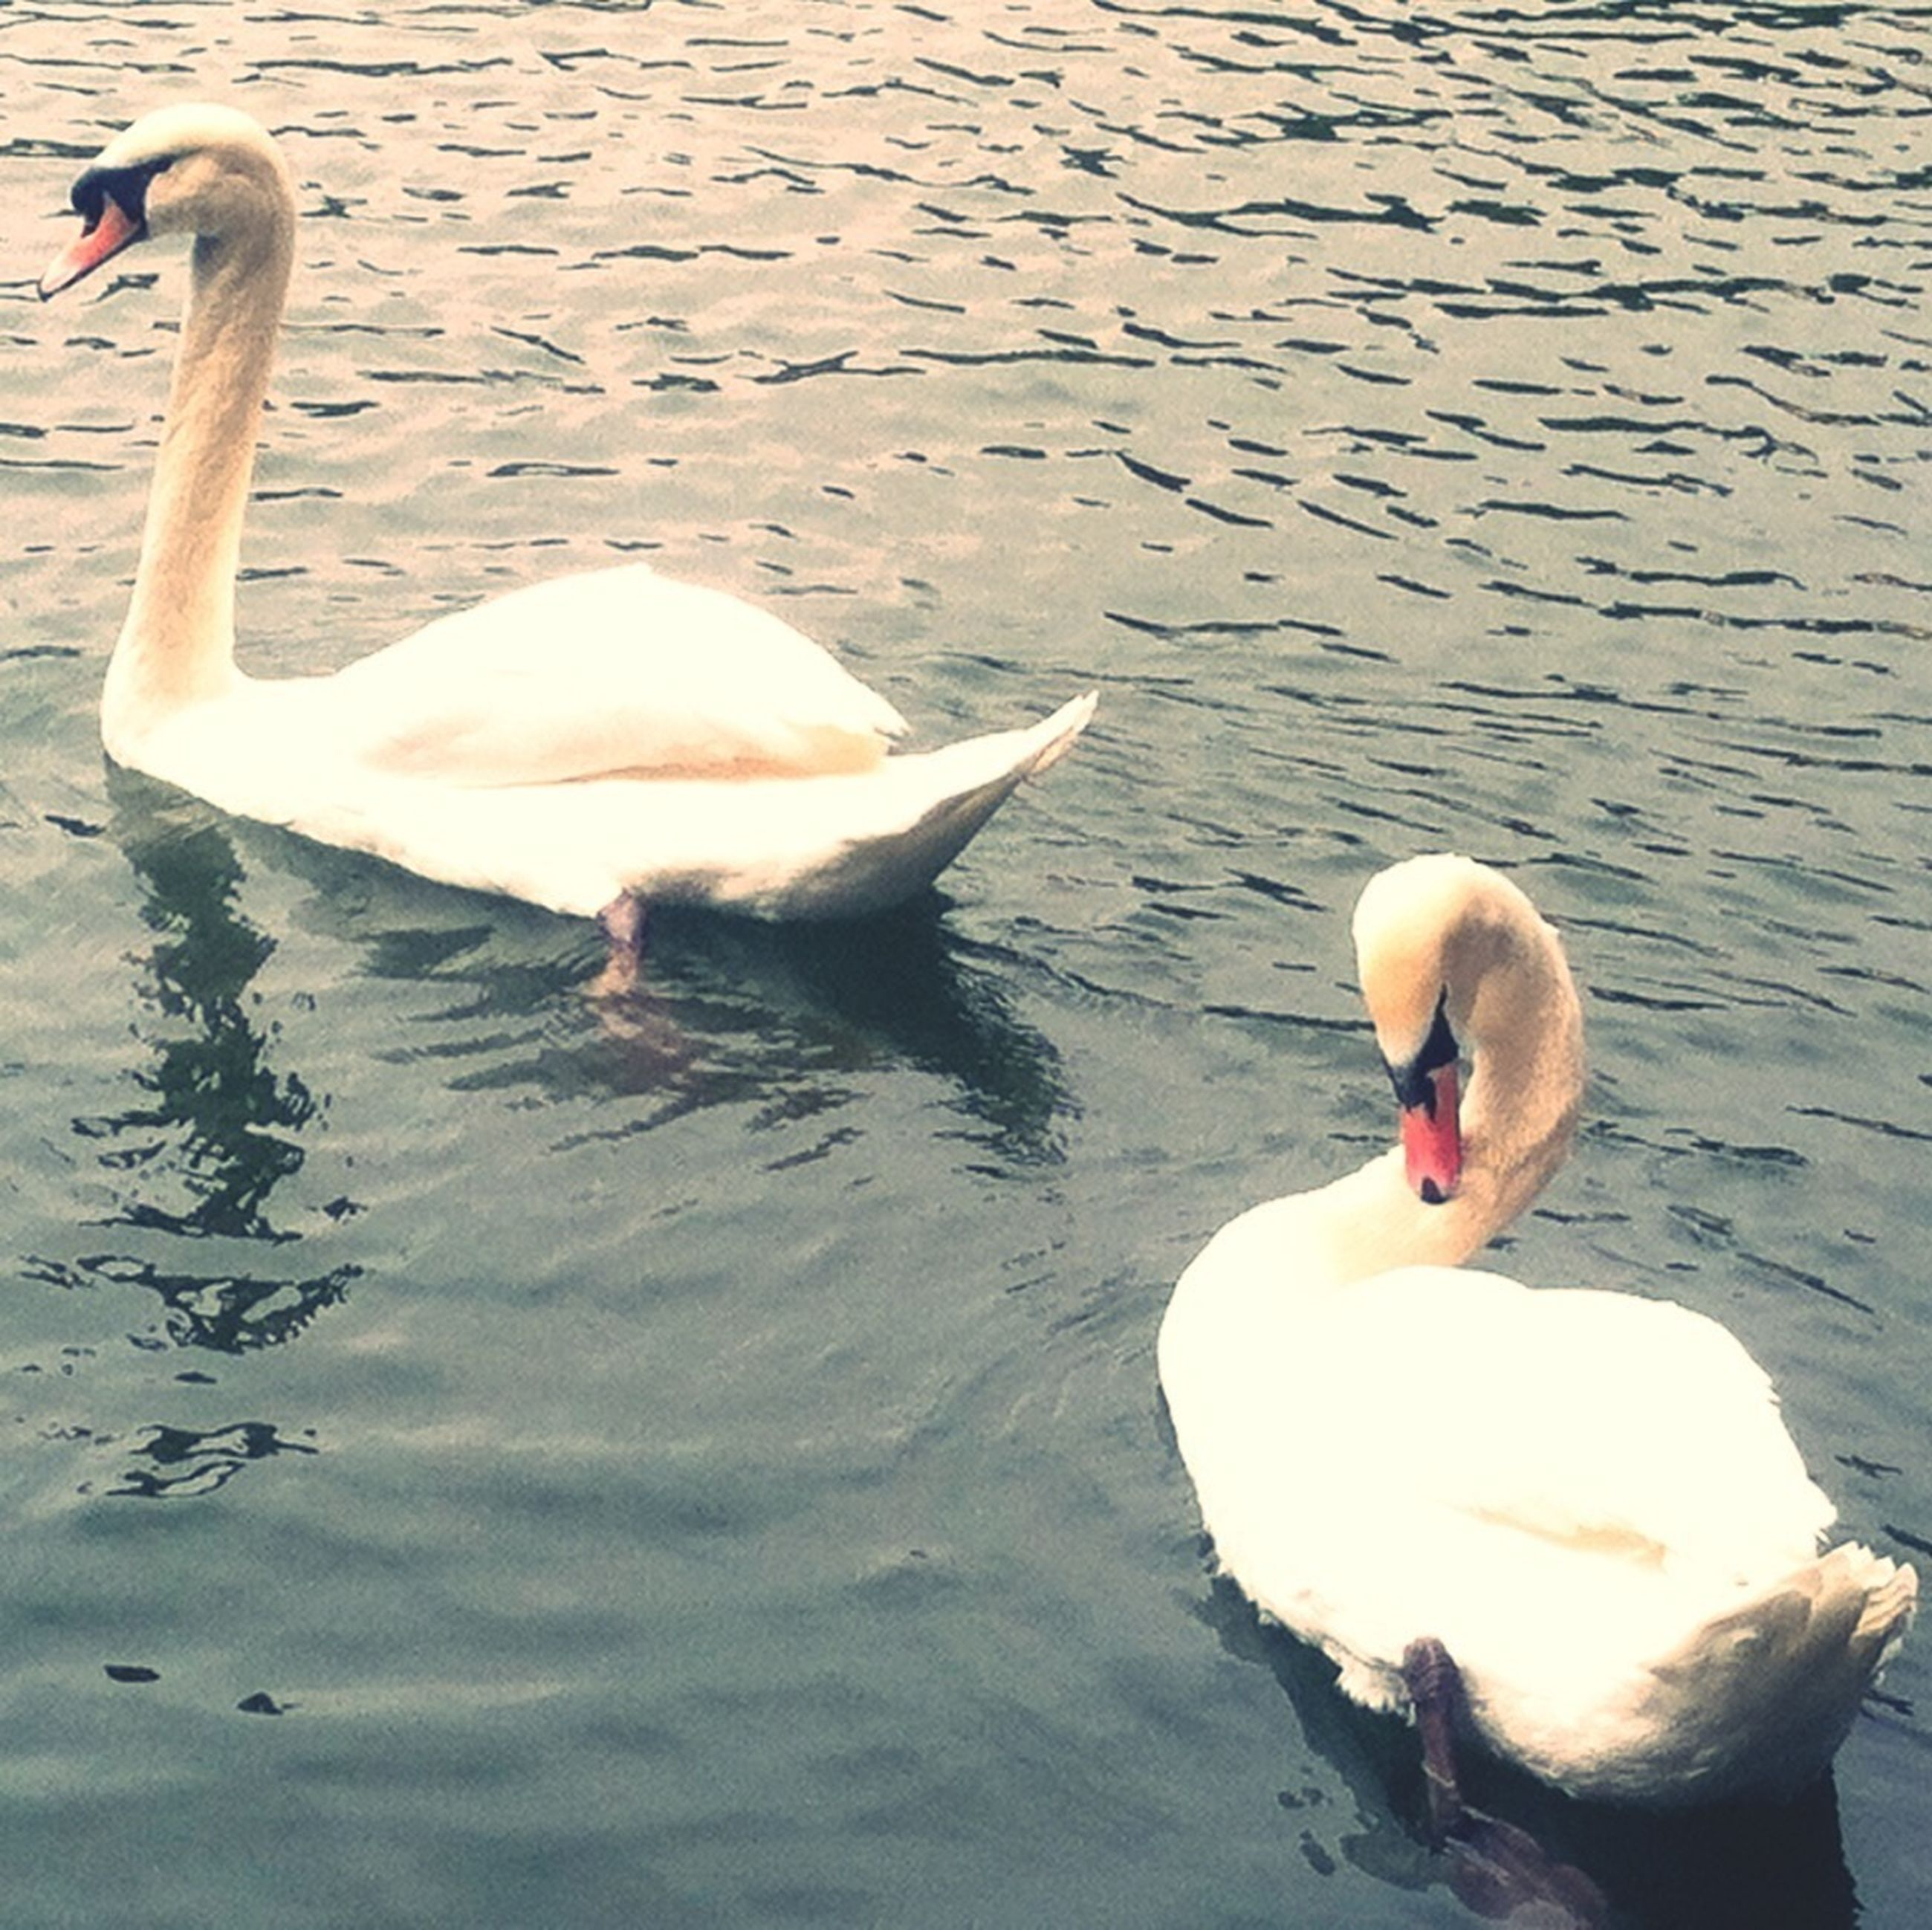 bird, swan, animal themes, water, lake, animals in the wild, wildlife, swimming, white color, reflection, water bird, duck, beak, waterfront, rippled, floating on water, nature, togetherness, two animals, outdoors